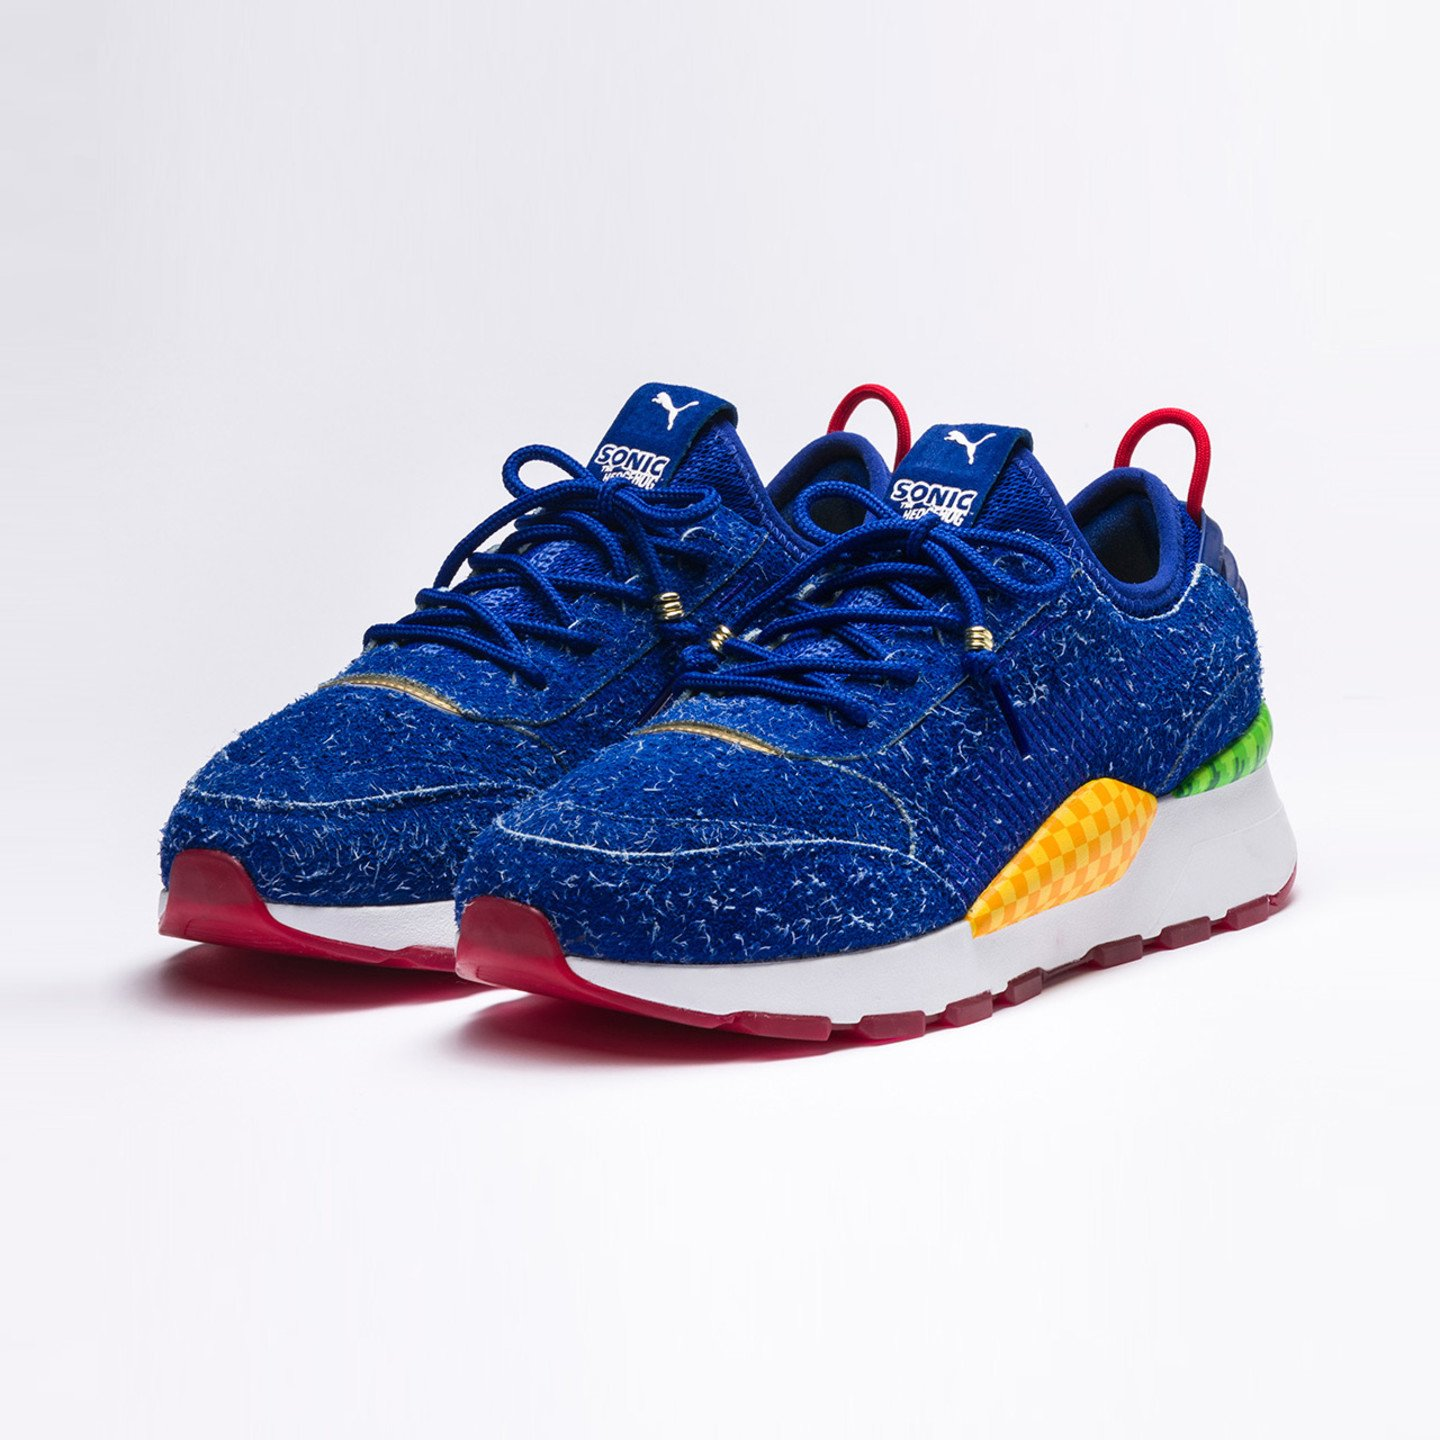 Puma RS-0 x SEGA 'Sonic the Hedgehog' Surf The Web Blue 368276 01